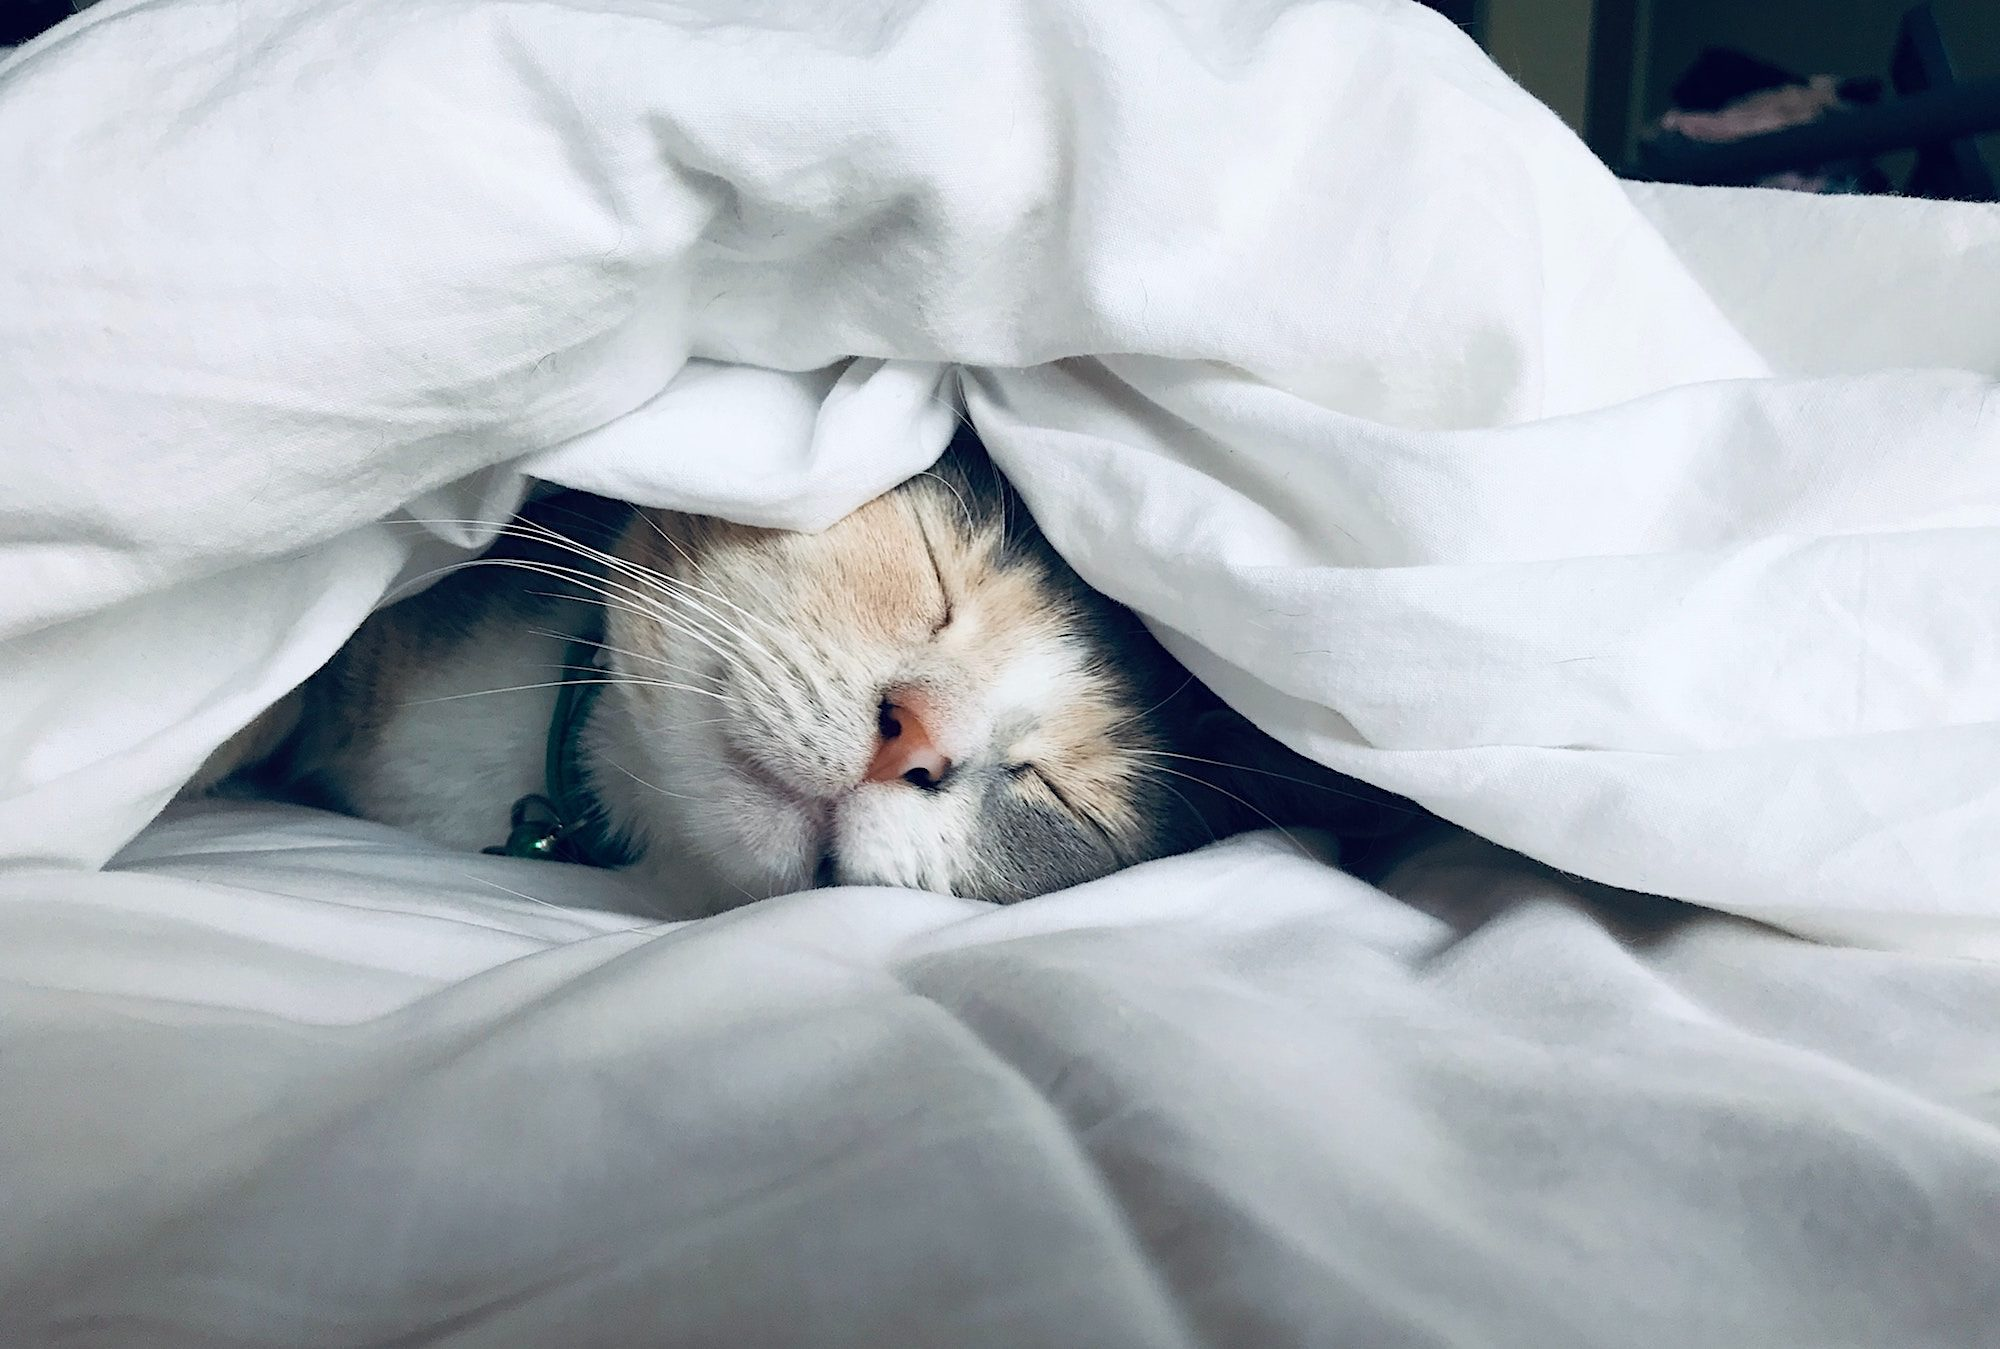 A very cute Calico cat sleeping happily wrapped up in the bed sheets, with only its head peaking through.